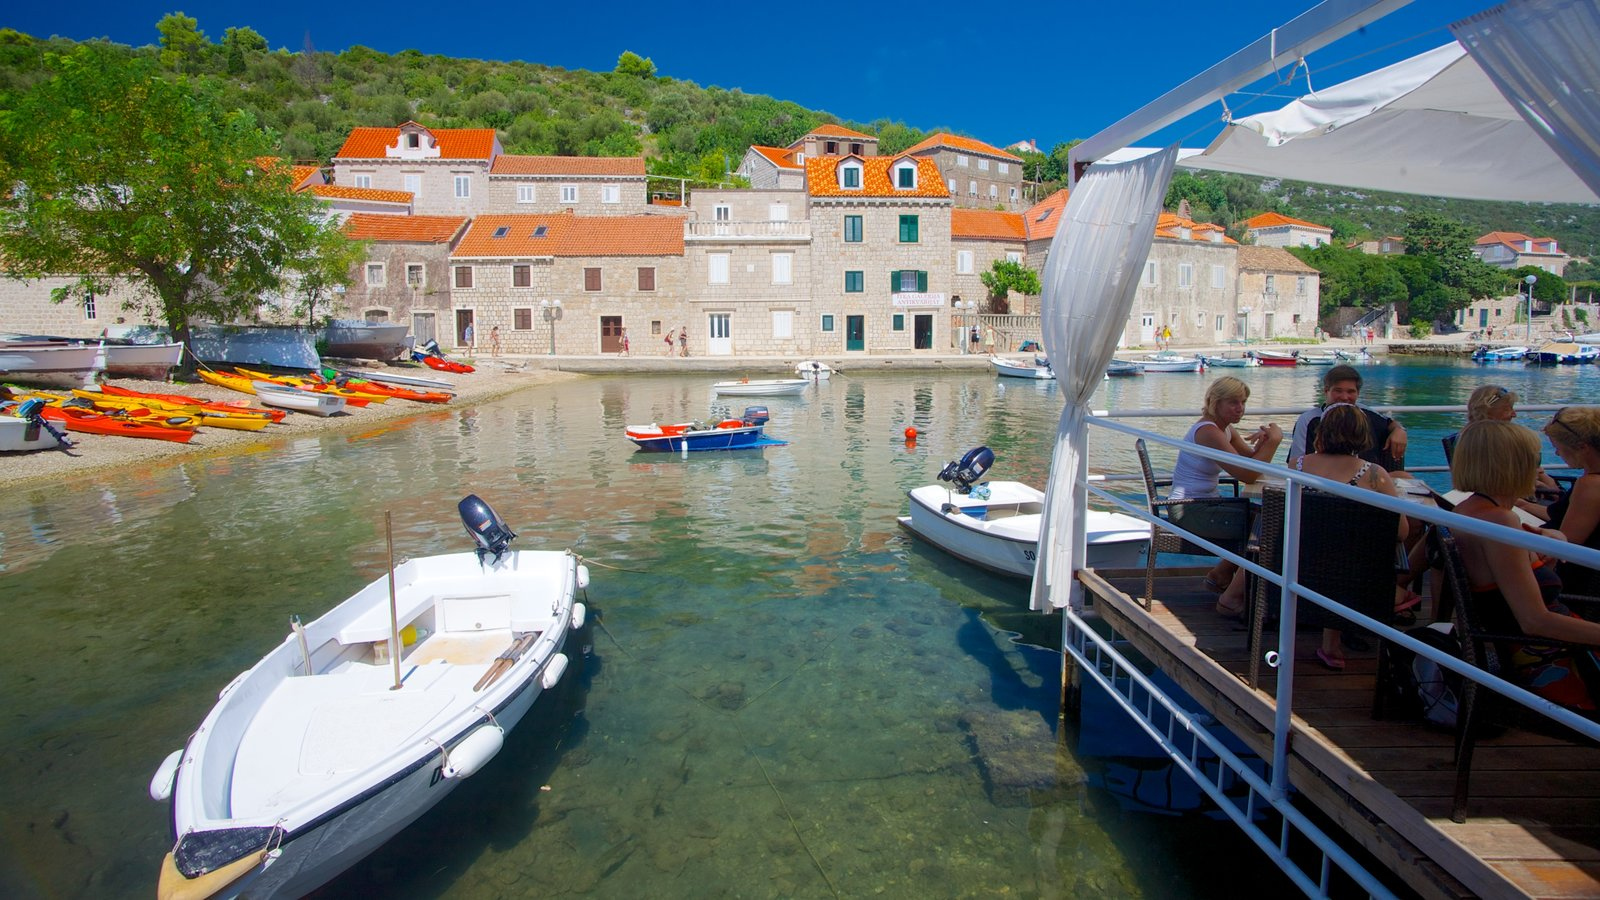 Dubrovnik - Southern Dalmatia which includes a bay or harbor, a coastal town and boating